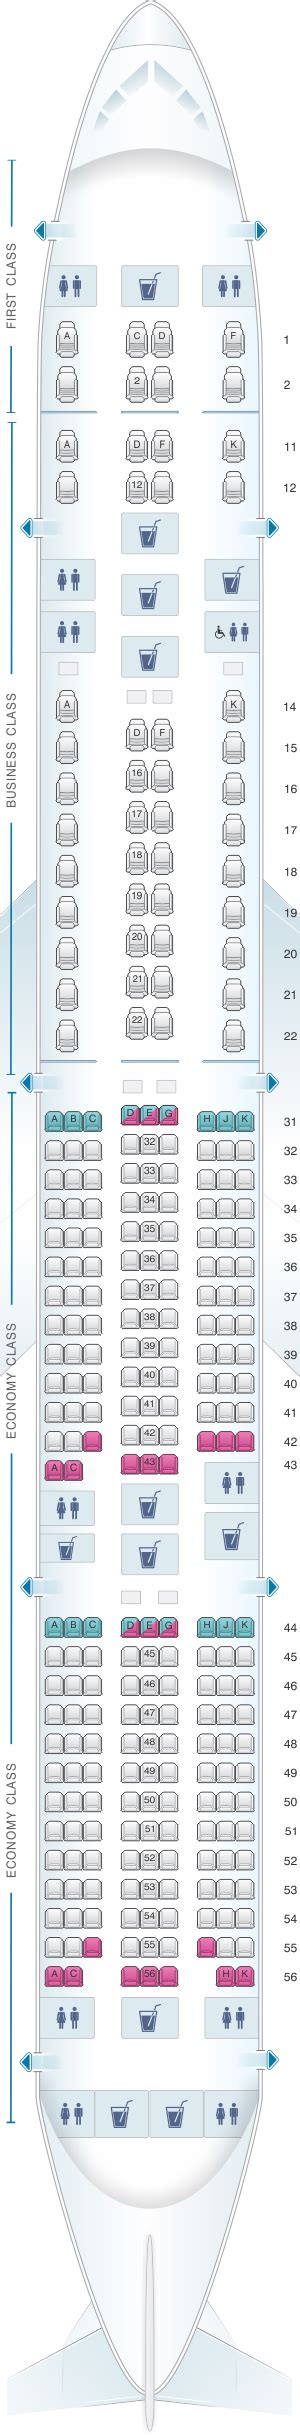 seat map singapore airlines boeing b777 300er three class